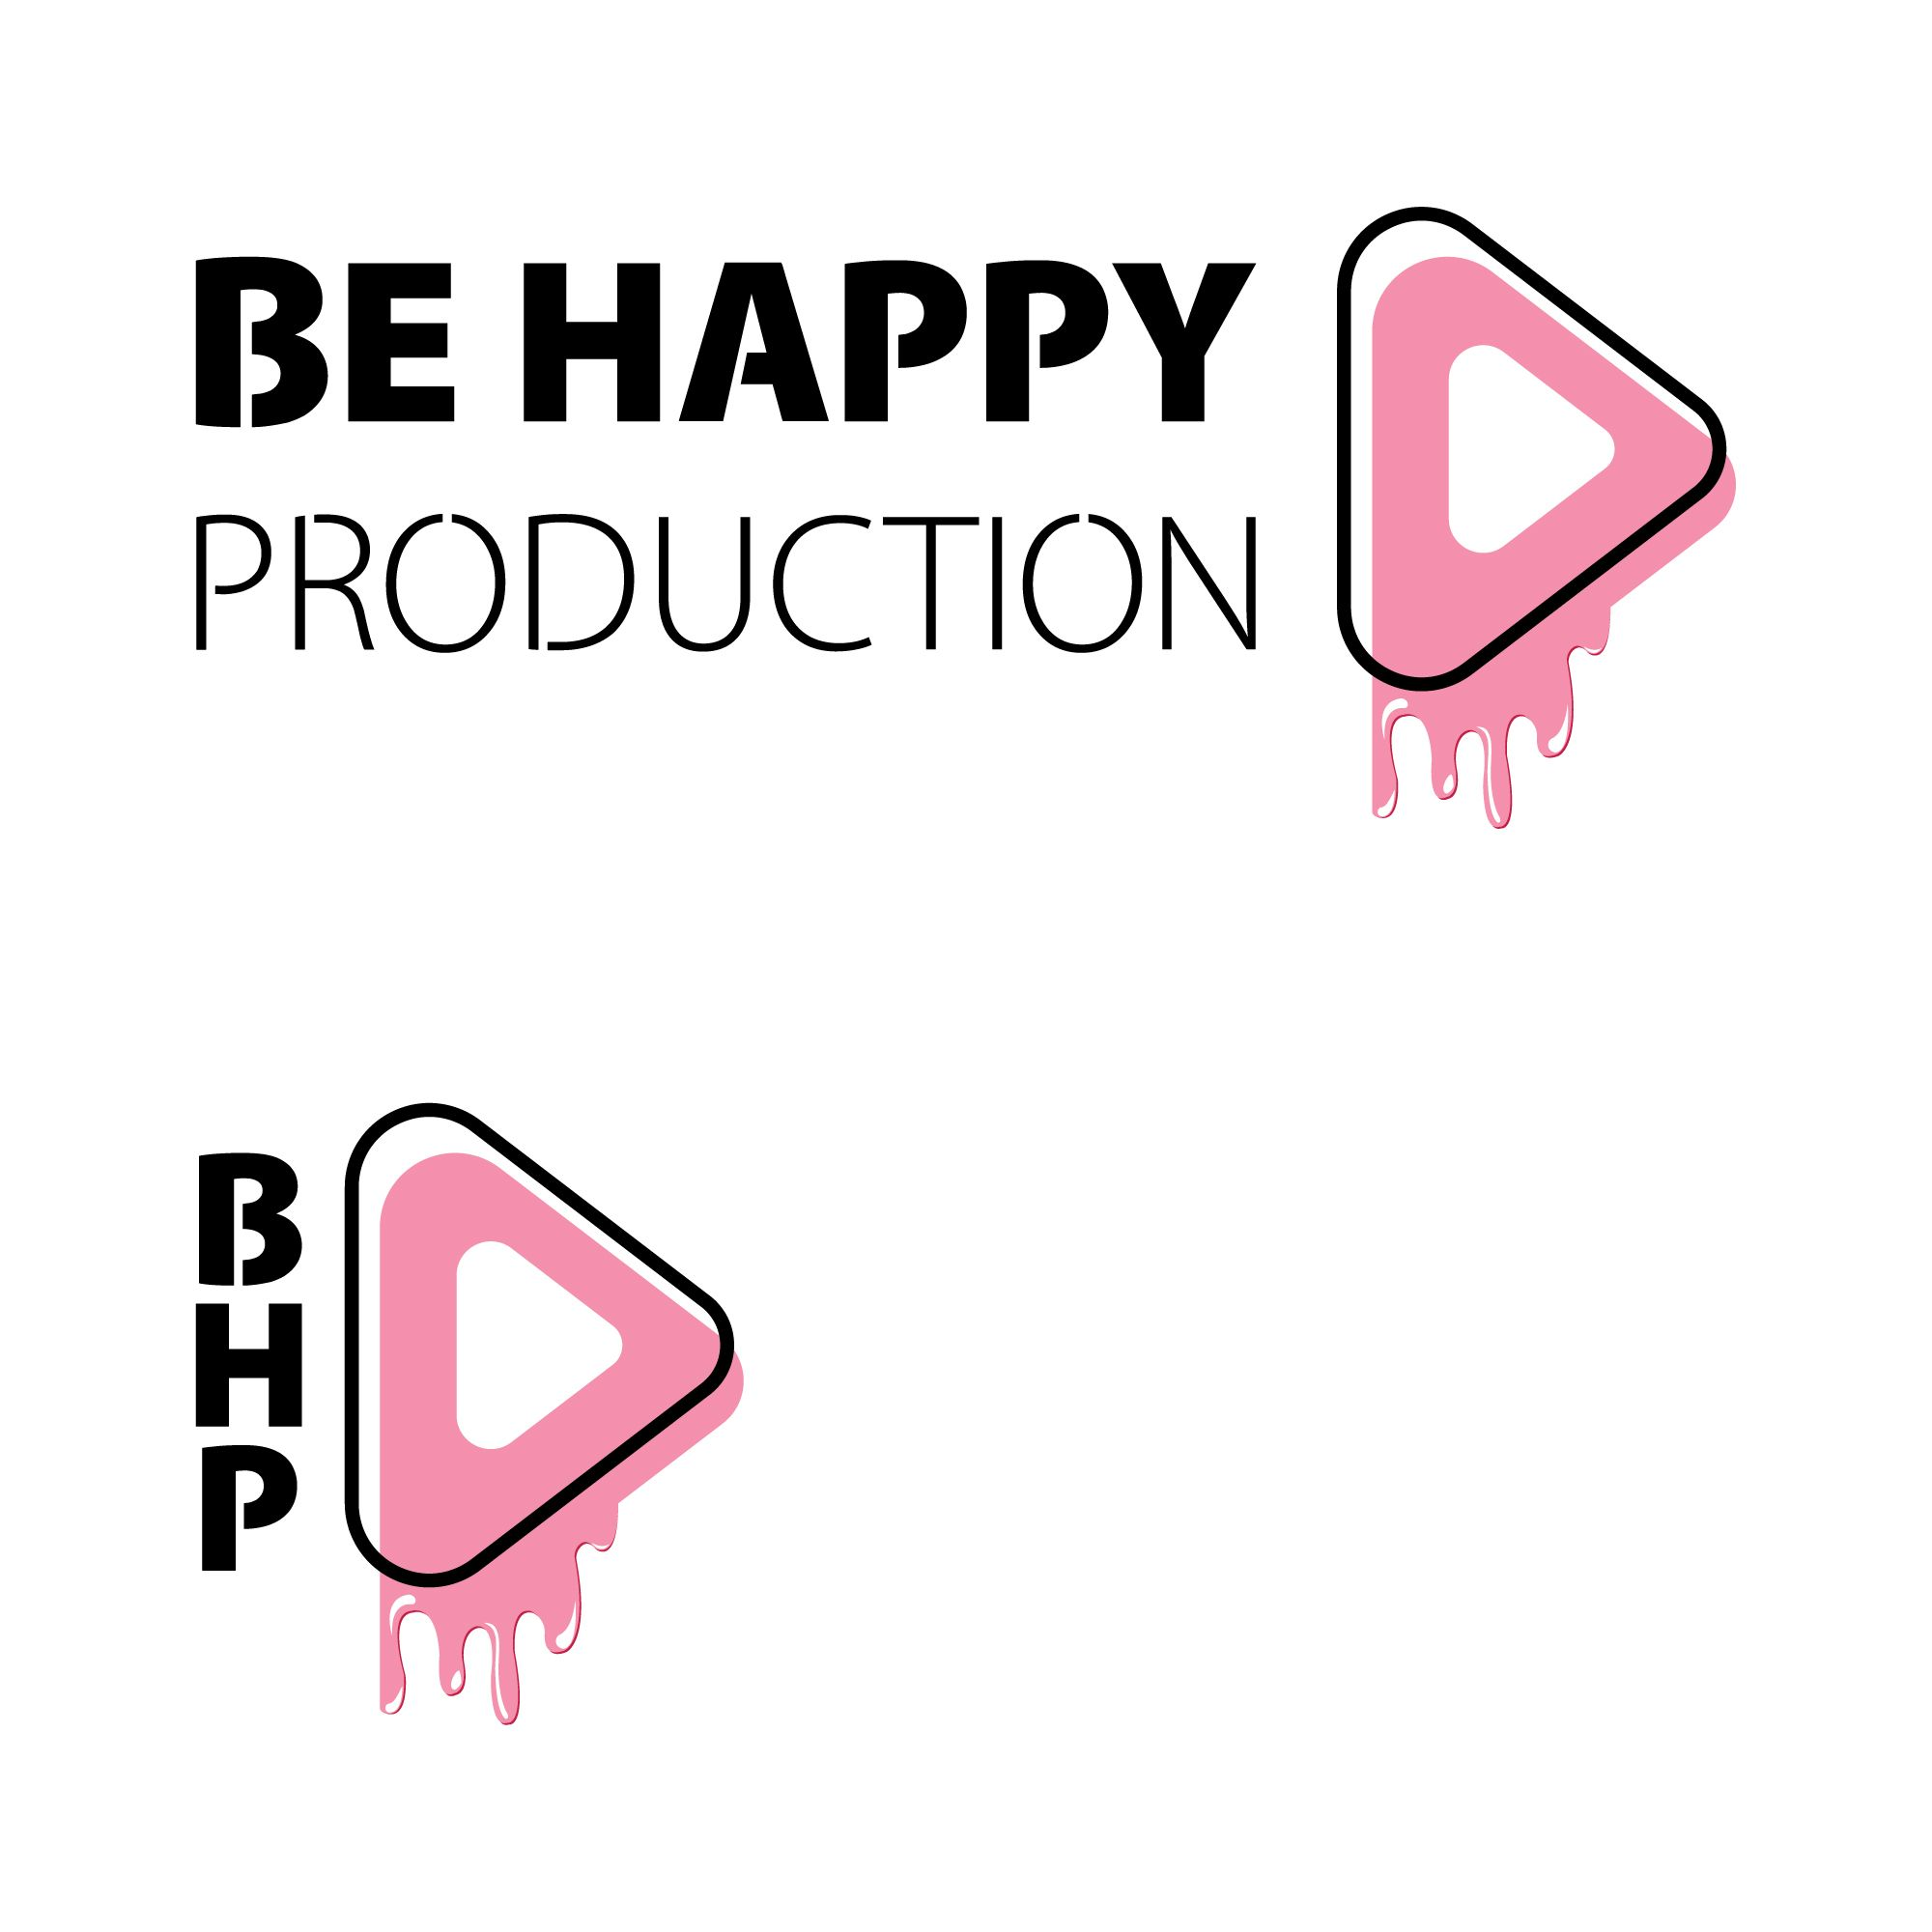 Логотип для Be Happy Production  - дизайнер kanatik